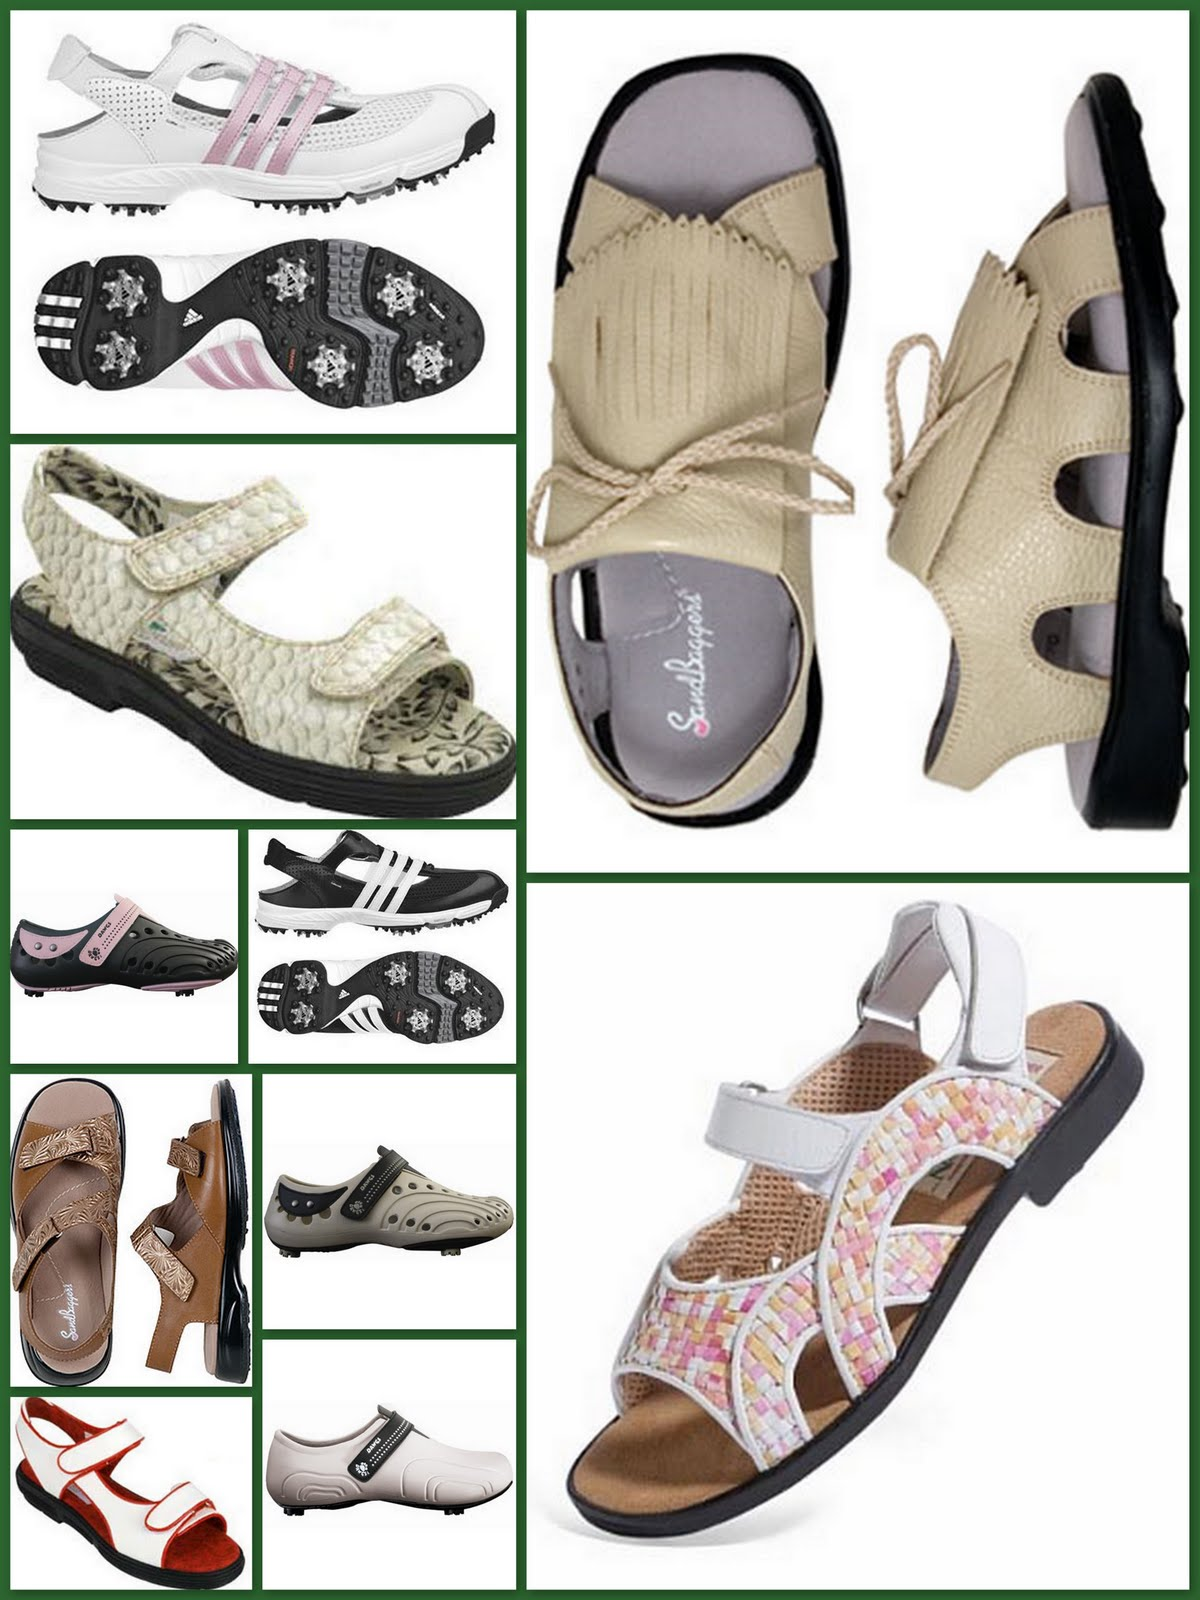 """Warm weather golf calls for summer """"lite"""" golf shoes! Shed the winter  leather shoe for some light weight ed7073068b6"""